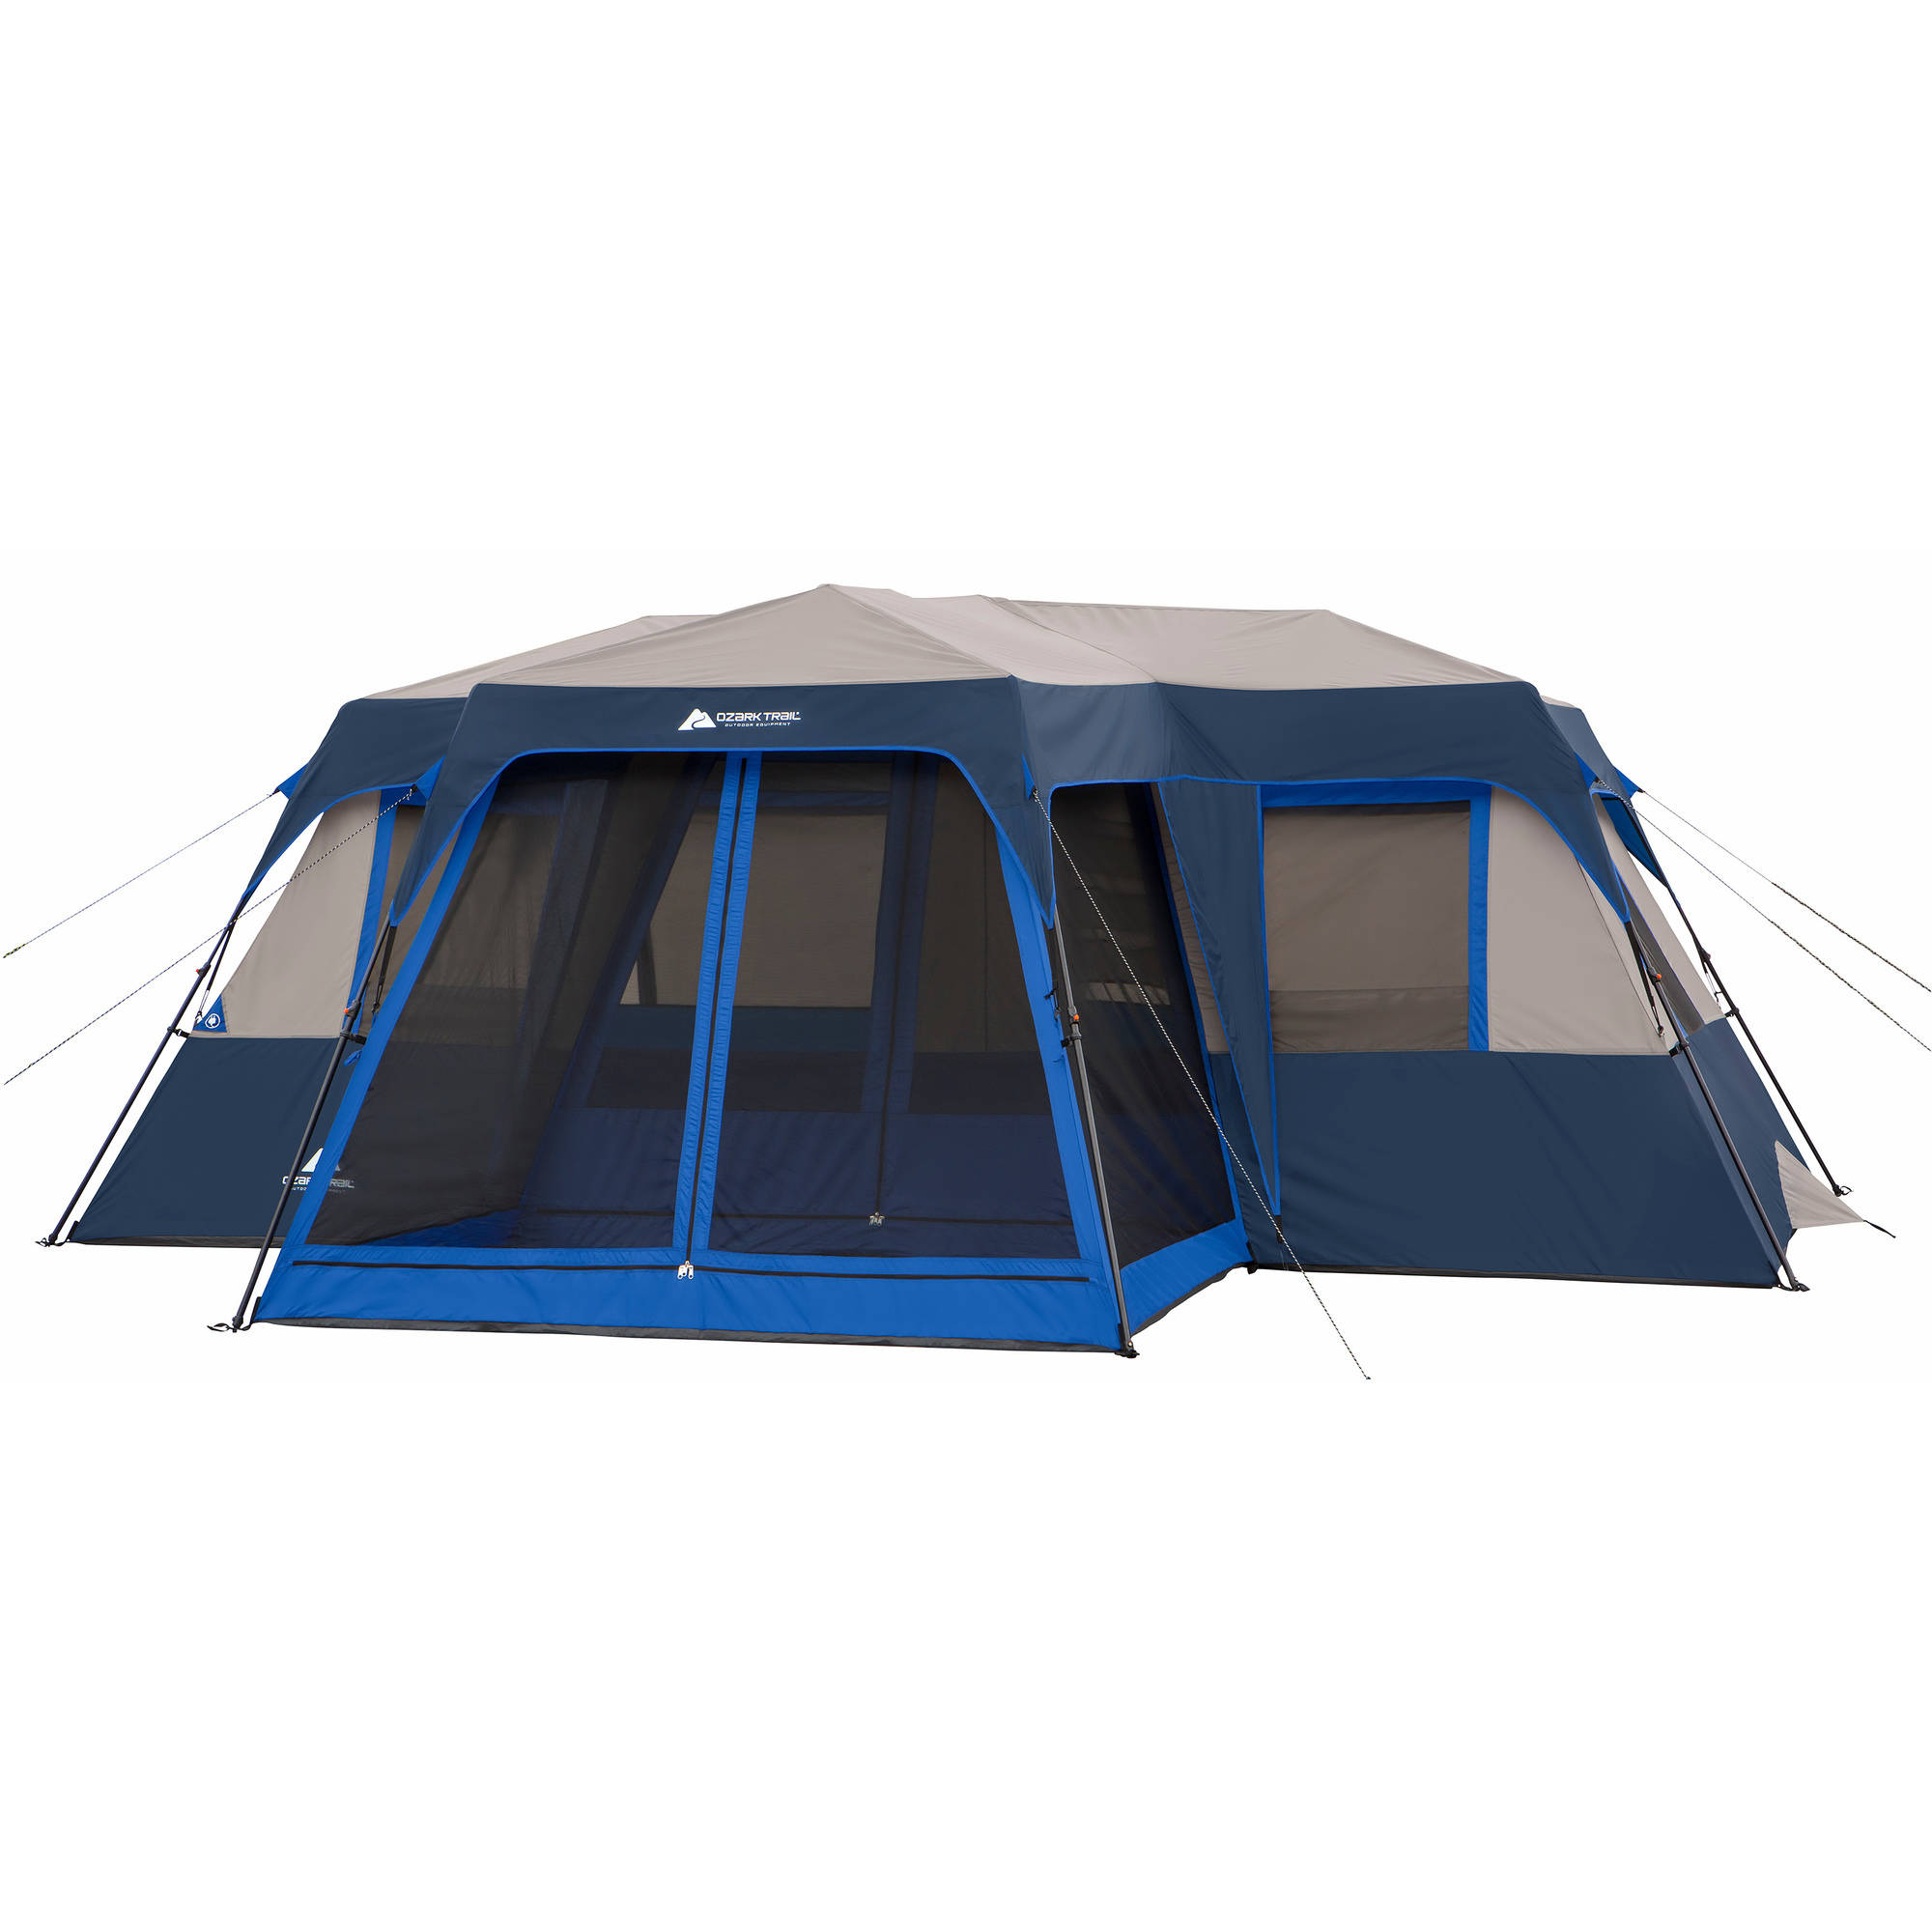 Ozark Trail 12 Person 2 Room Instant Cabin Tent with Screen Room  sc 1 st  Walmart & Instant Tents